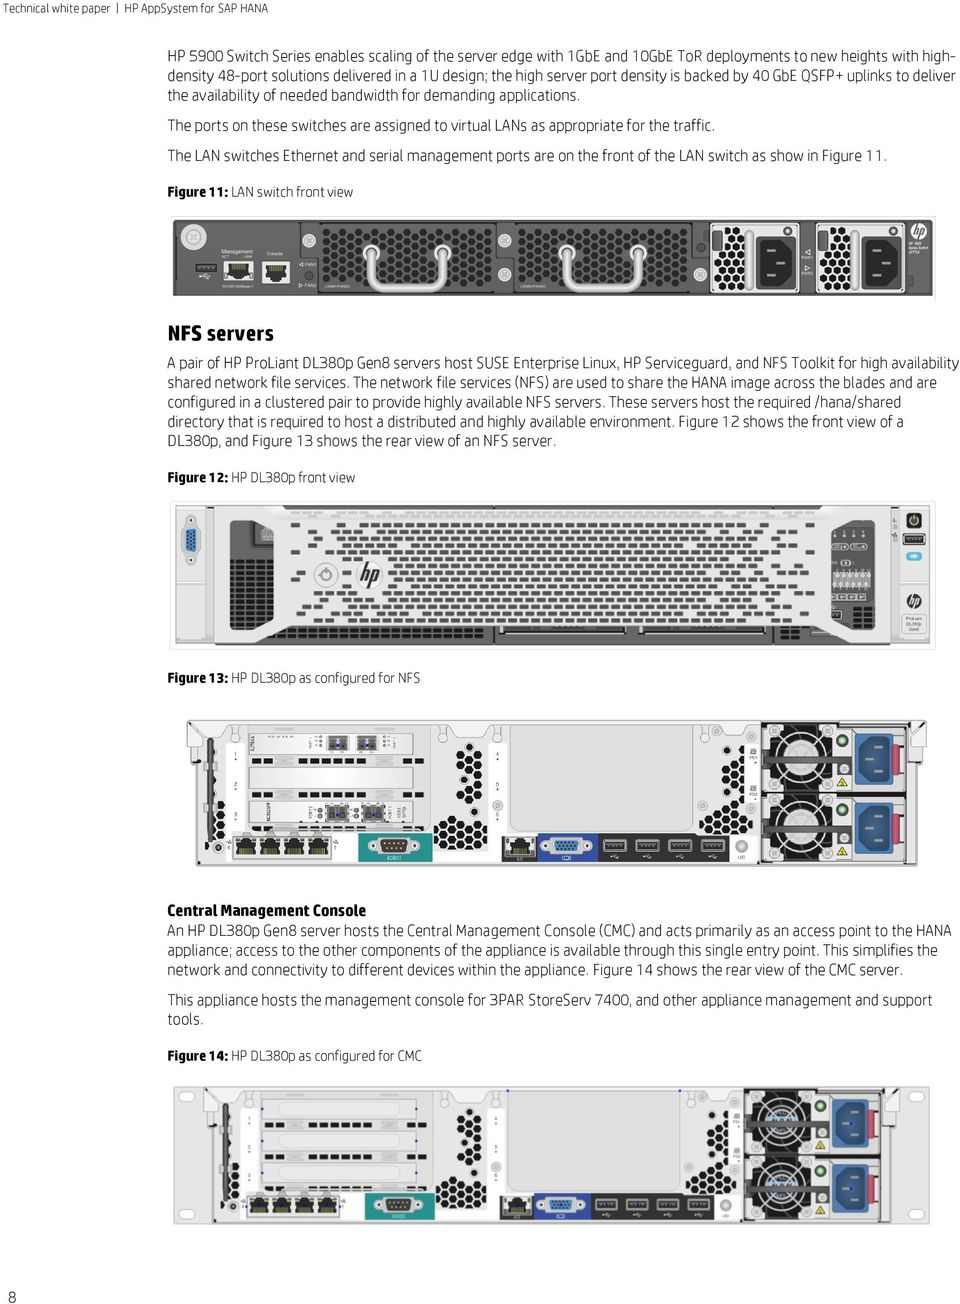 The LAN switches Ethernet and serial management ports are on the front of the LAN switch as show in Figure 11.